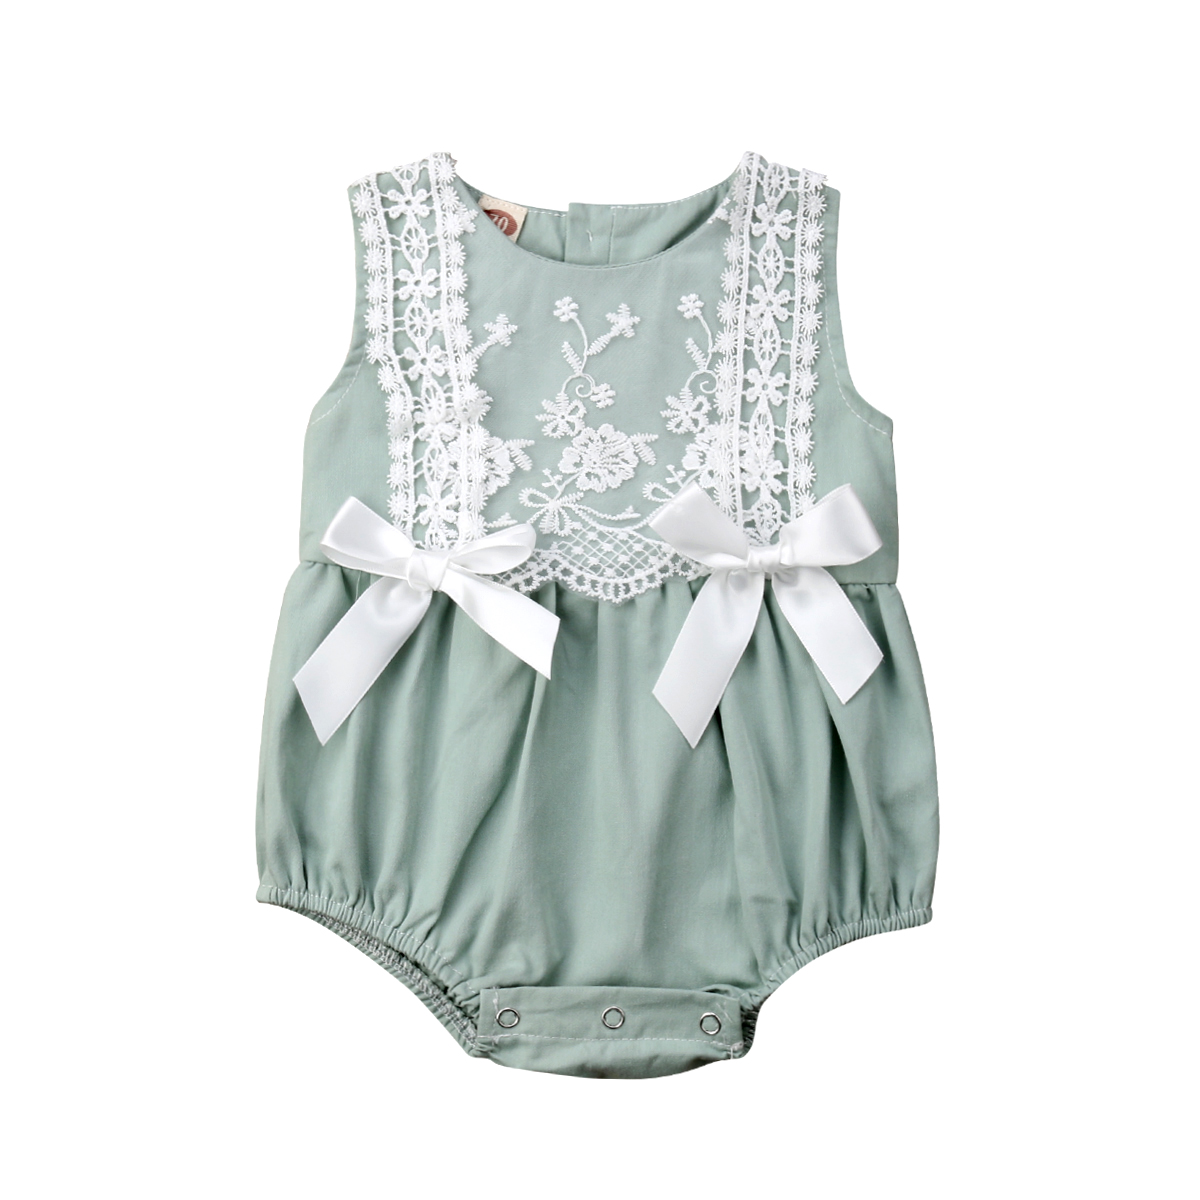 Infant Newborn Baby 2019 Brand New  Girls Clothing Lace Ruffles Rompers Jumpsuit Cute Bow Sunsuit Summer Baby Girls Rompers